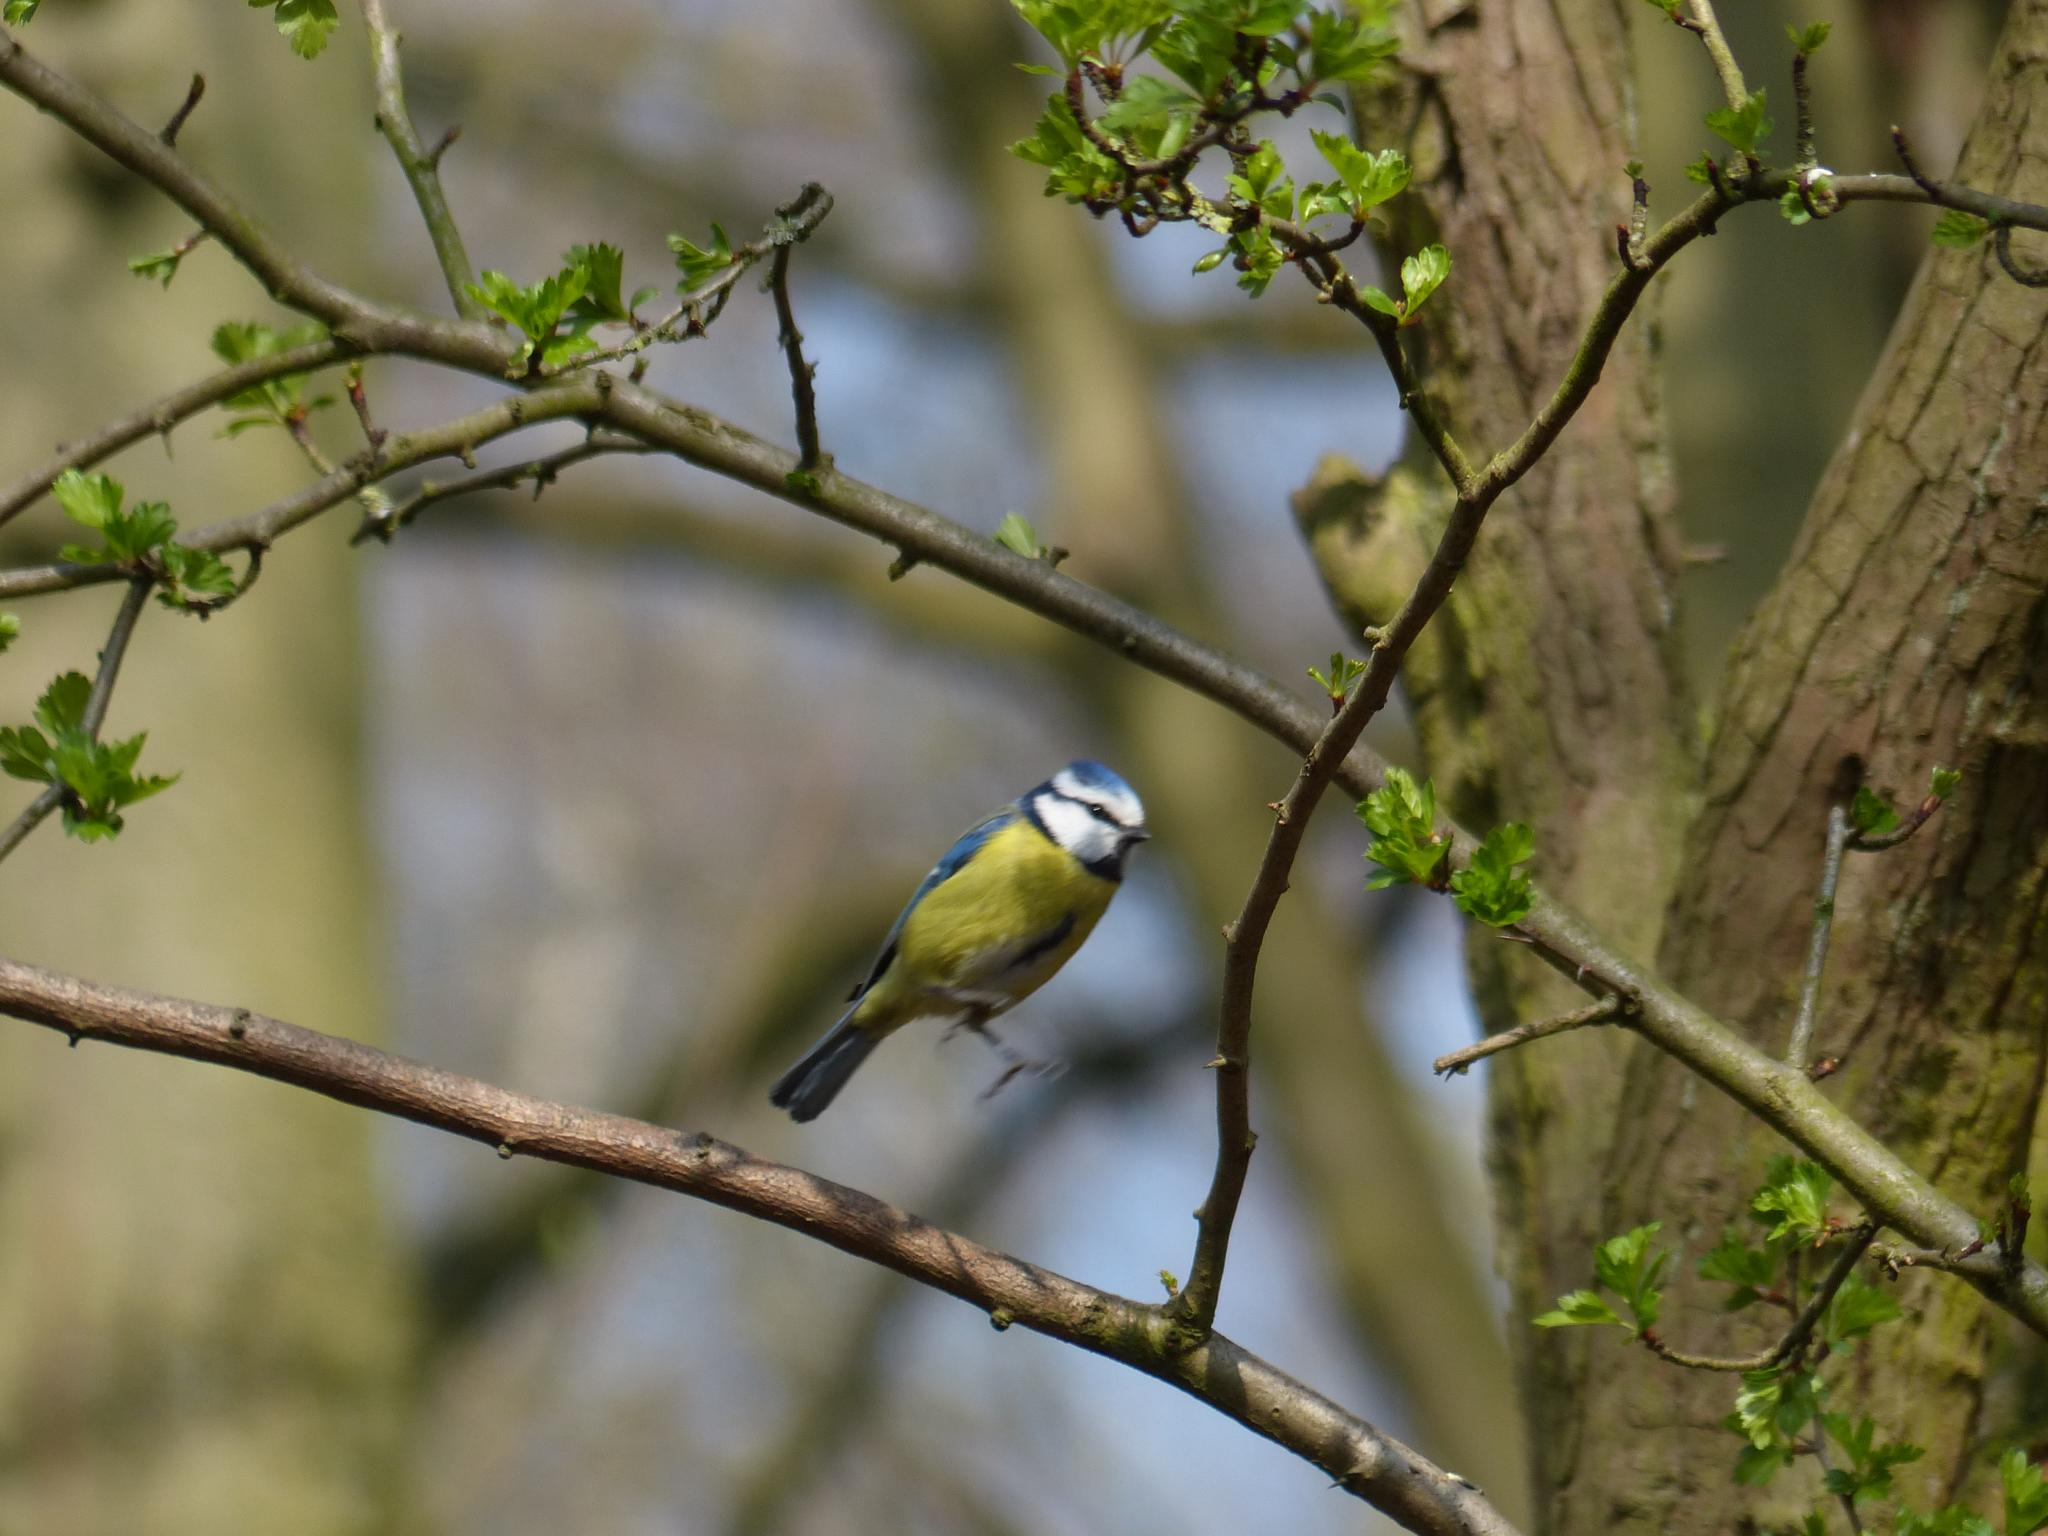 Jumping bluetit by wendy.west.9212